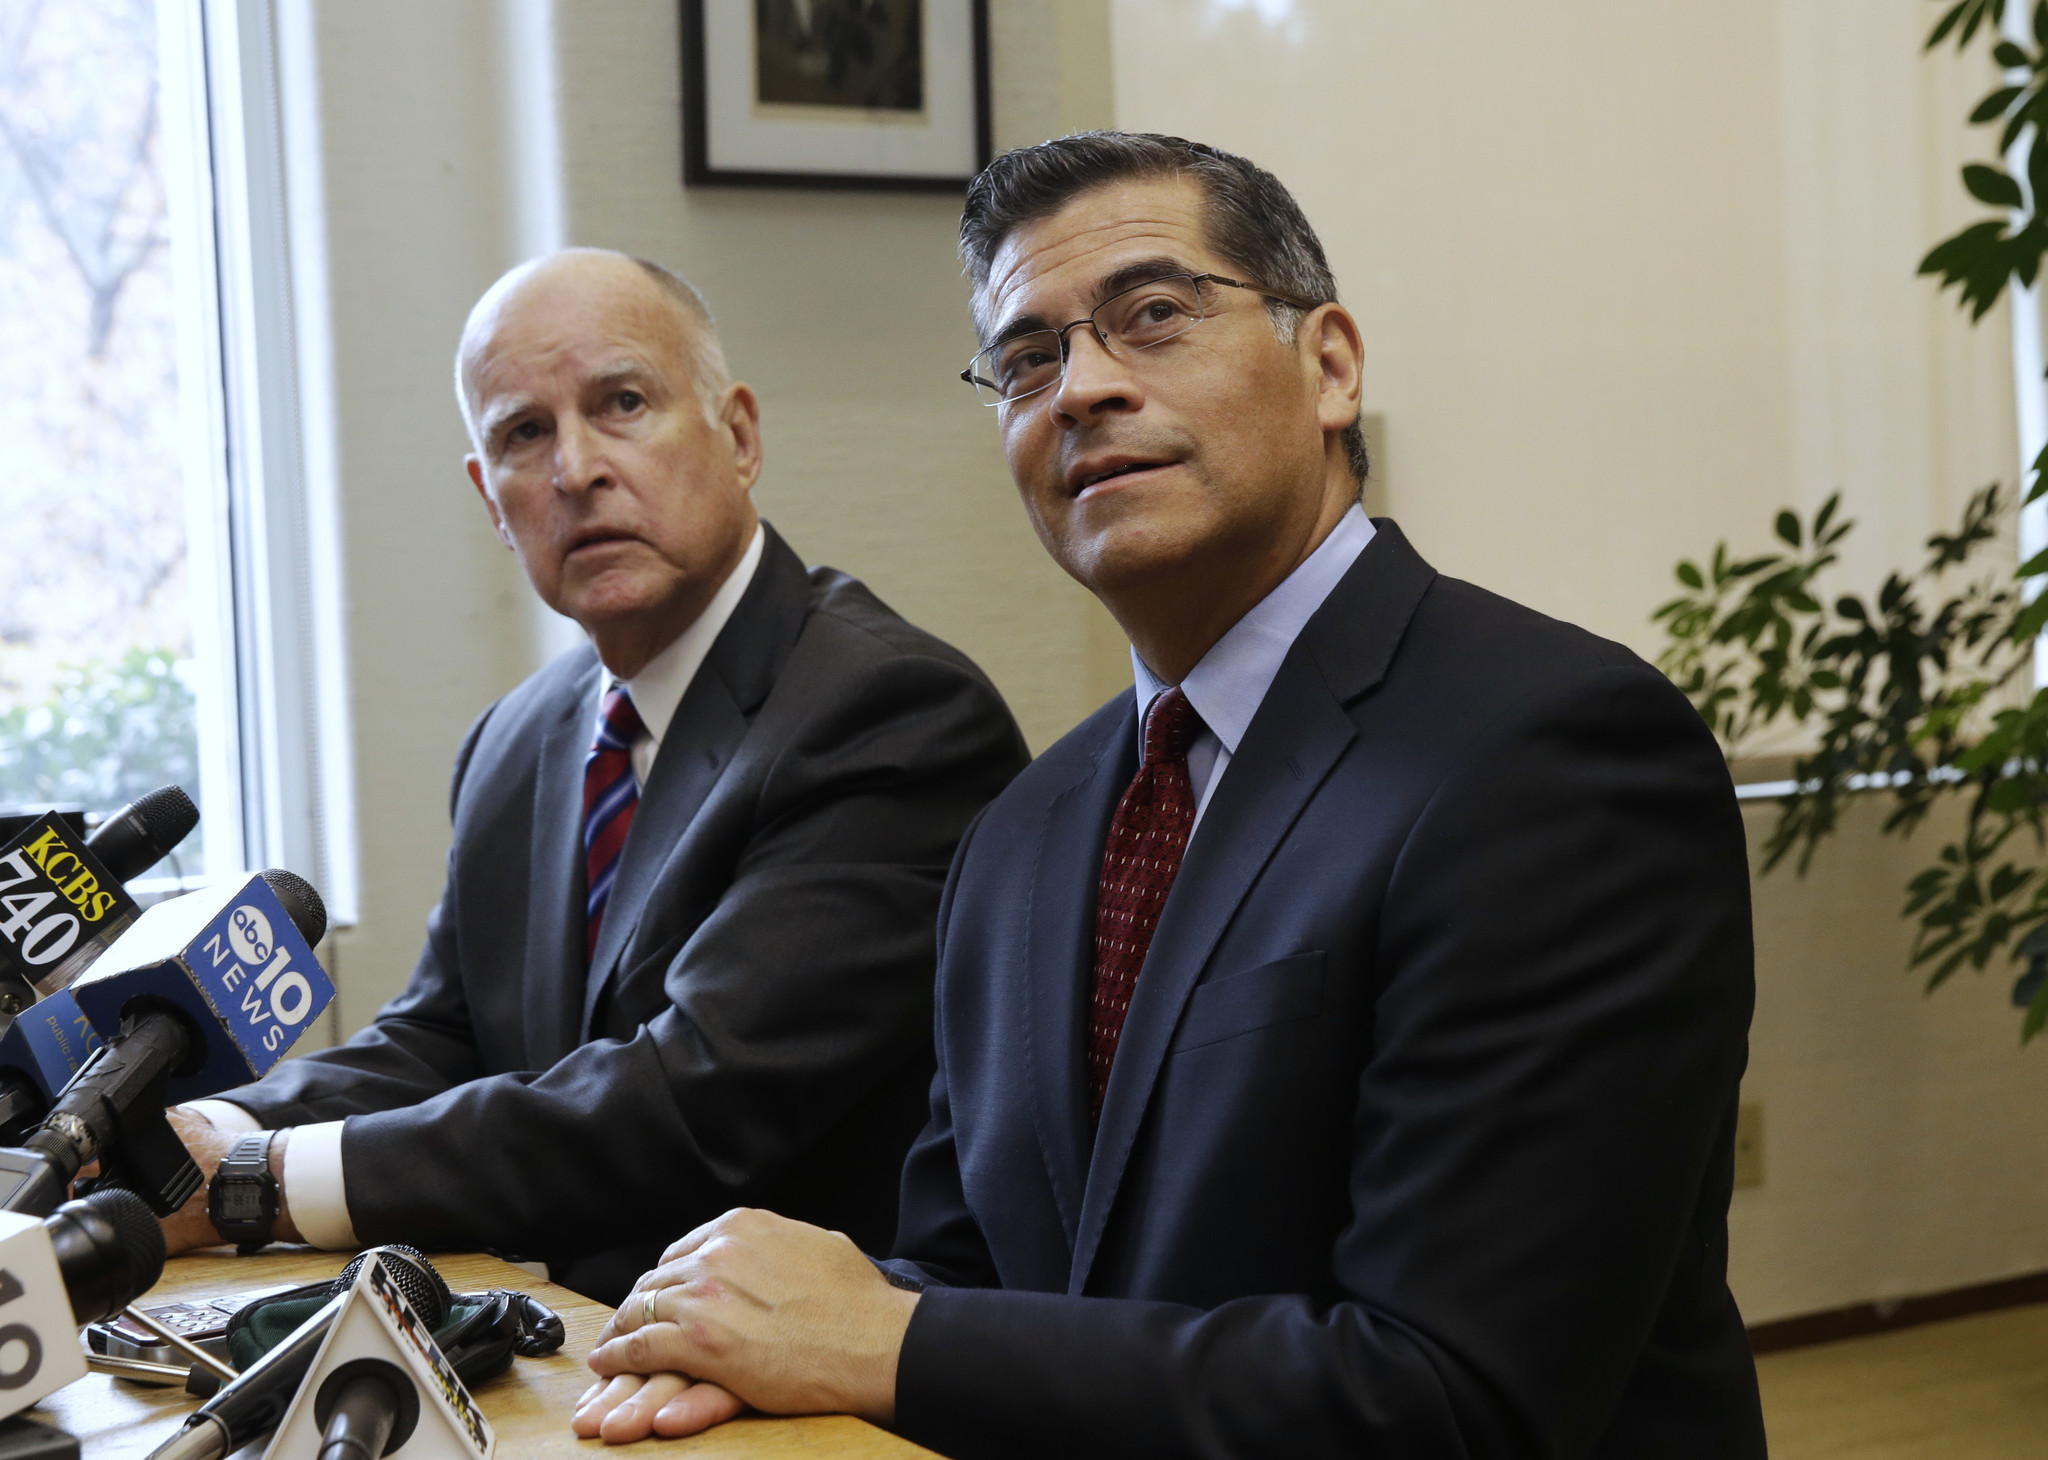 Gov. Jerry Brown, left, and Rep. Xavier Becerra, D-Los Angeles, Brown's nominee for California Attorney General, during a news conference in Sacramento.